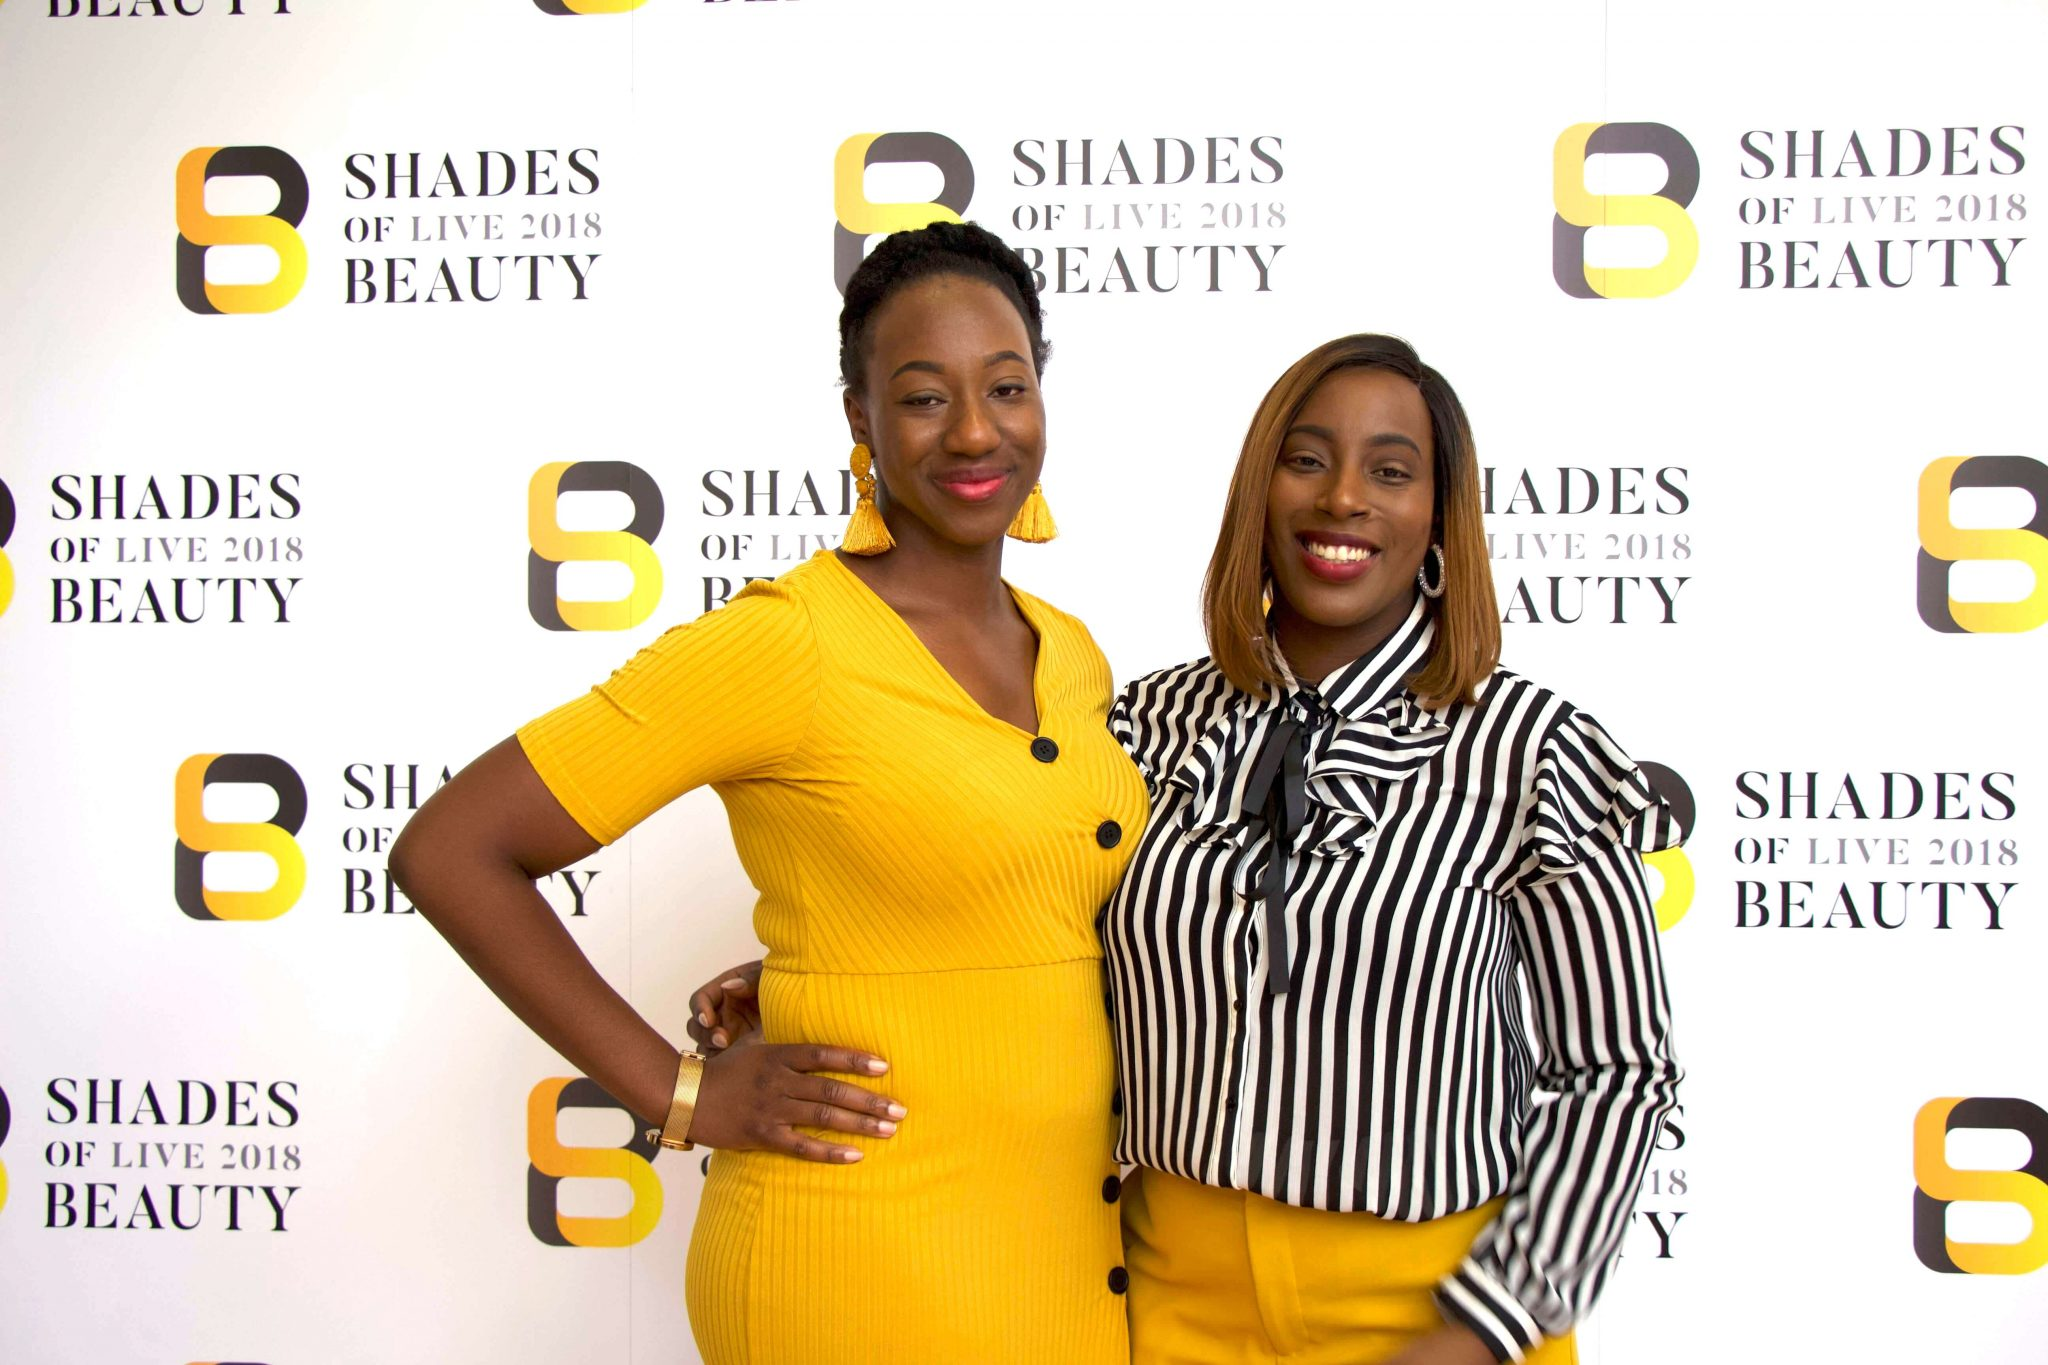 Shades of Beauty Live